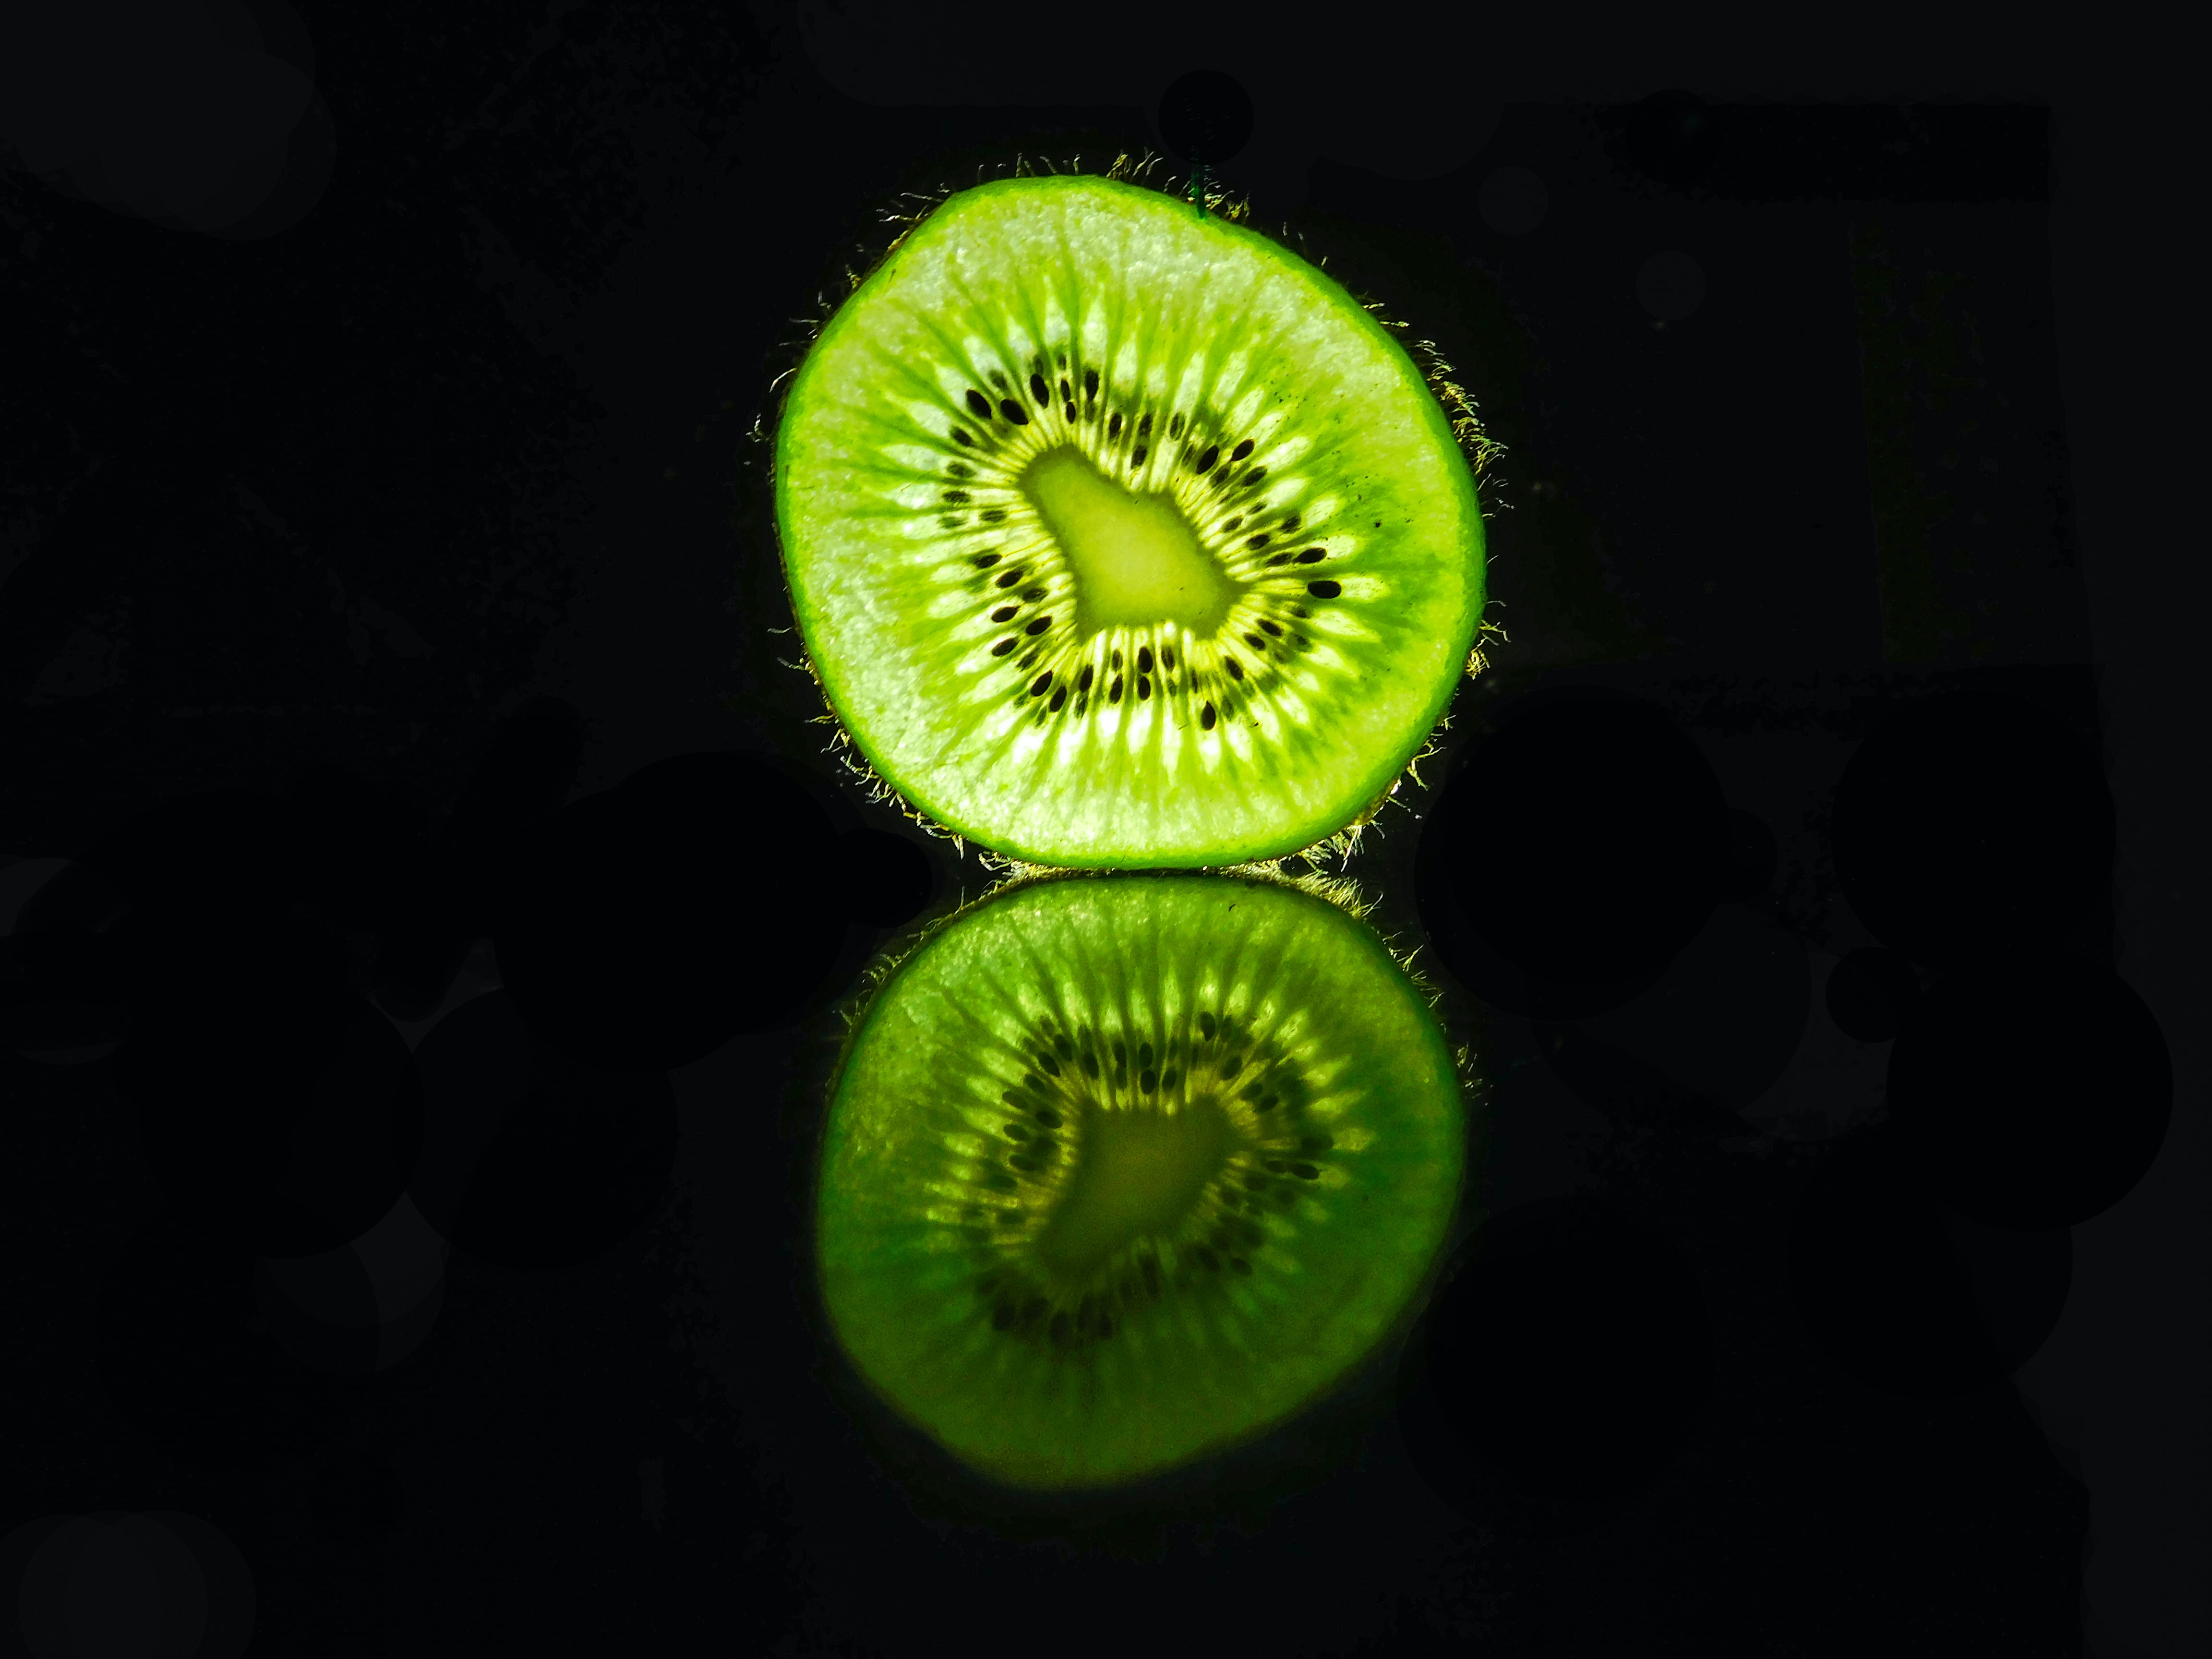 green slice fruit